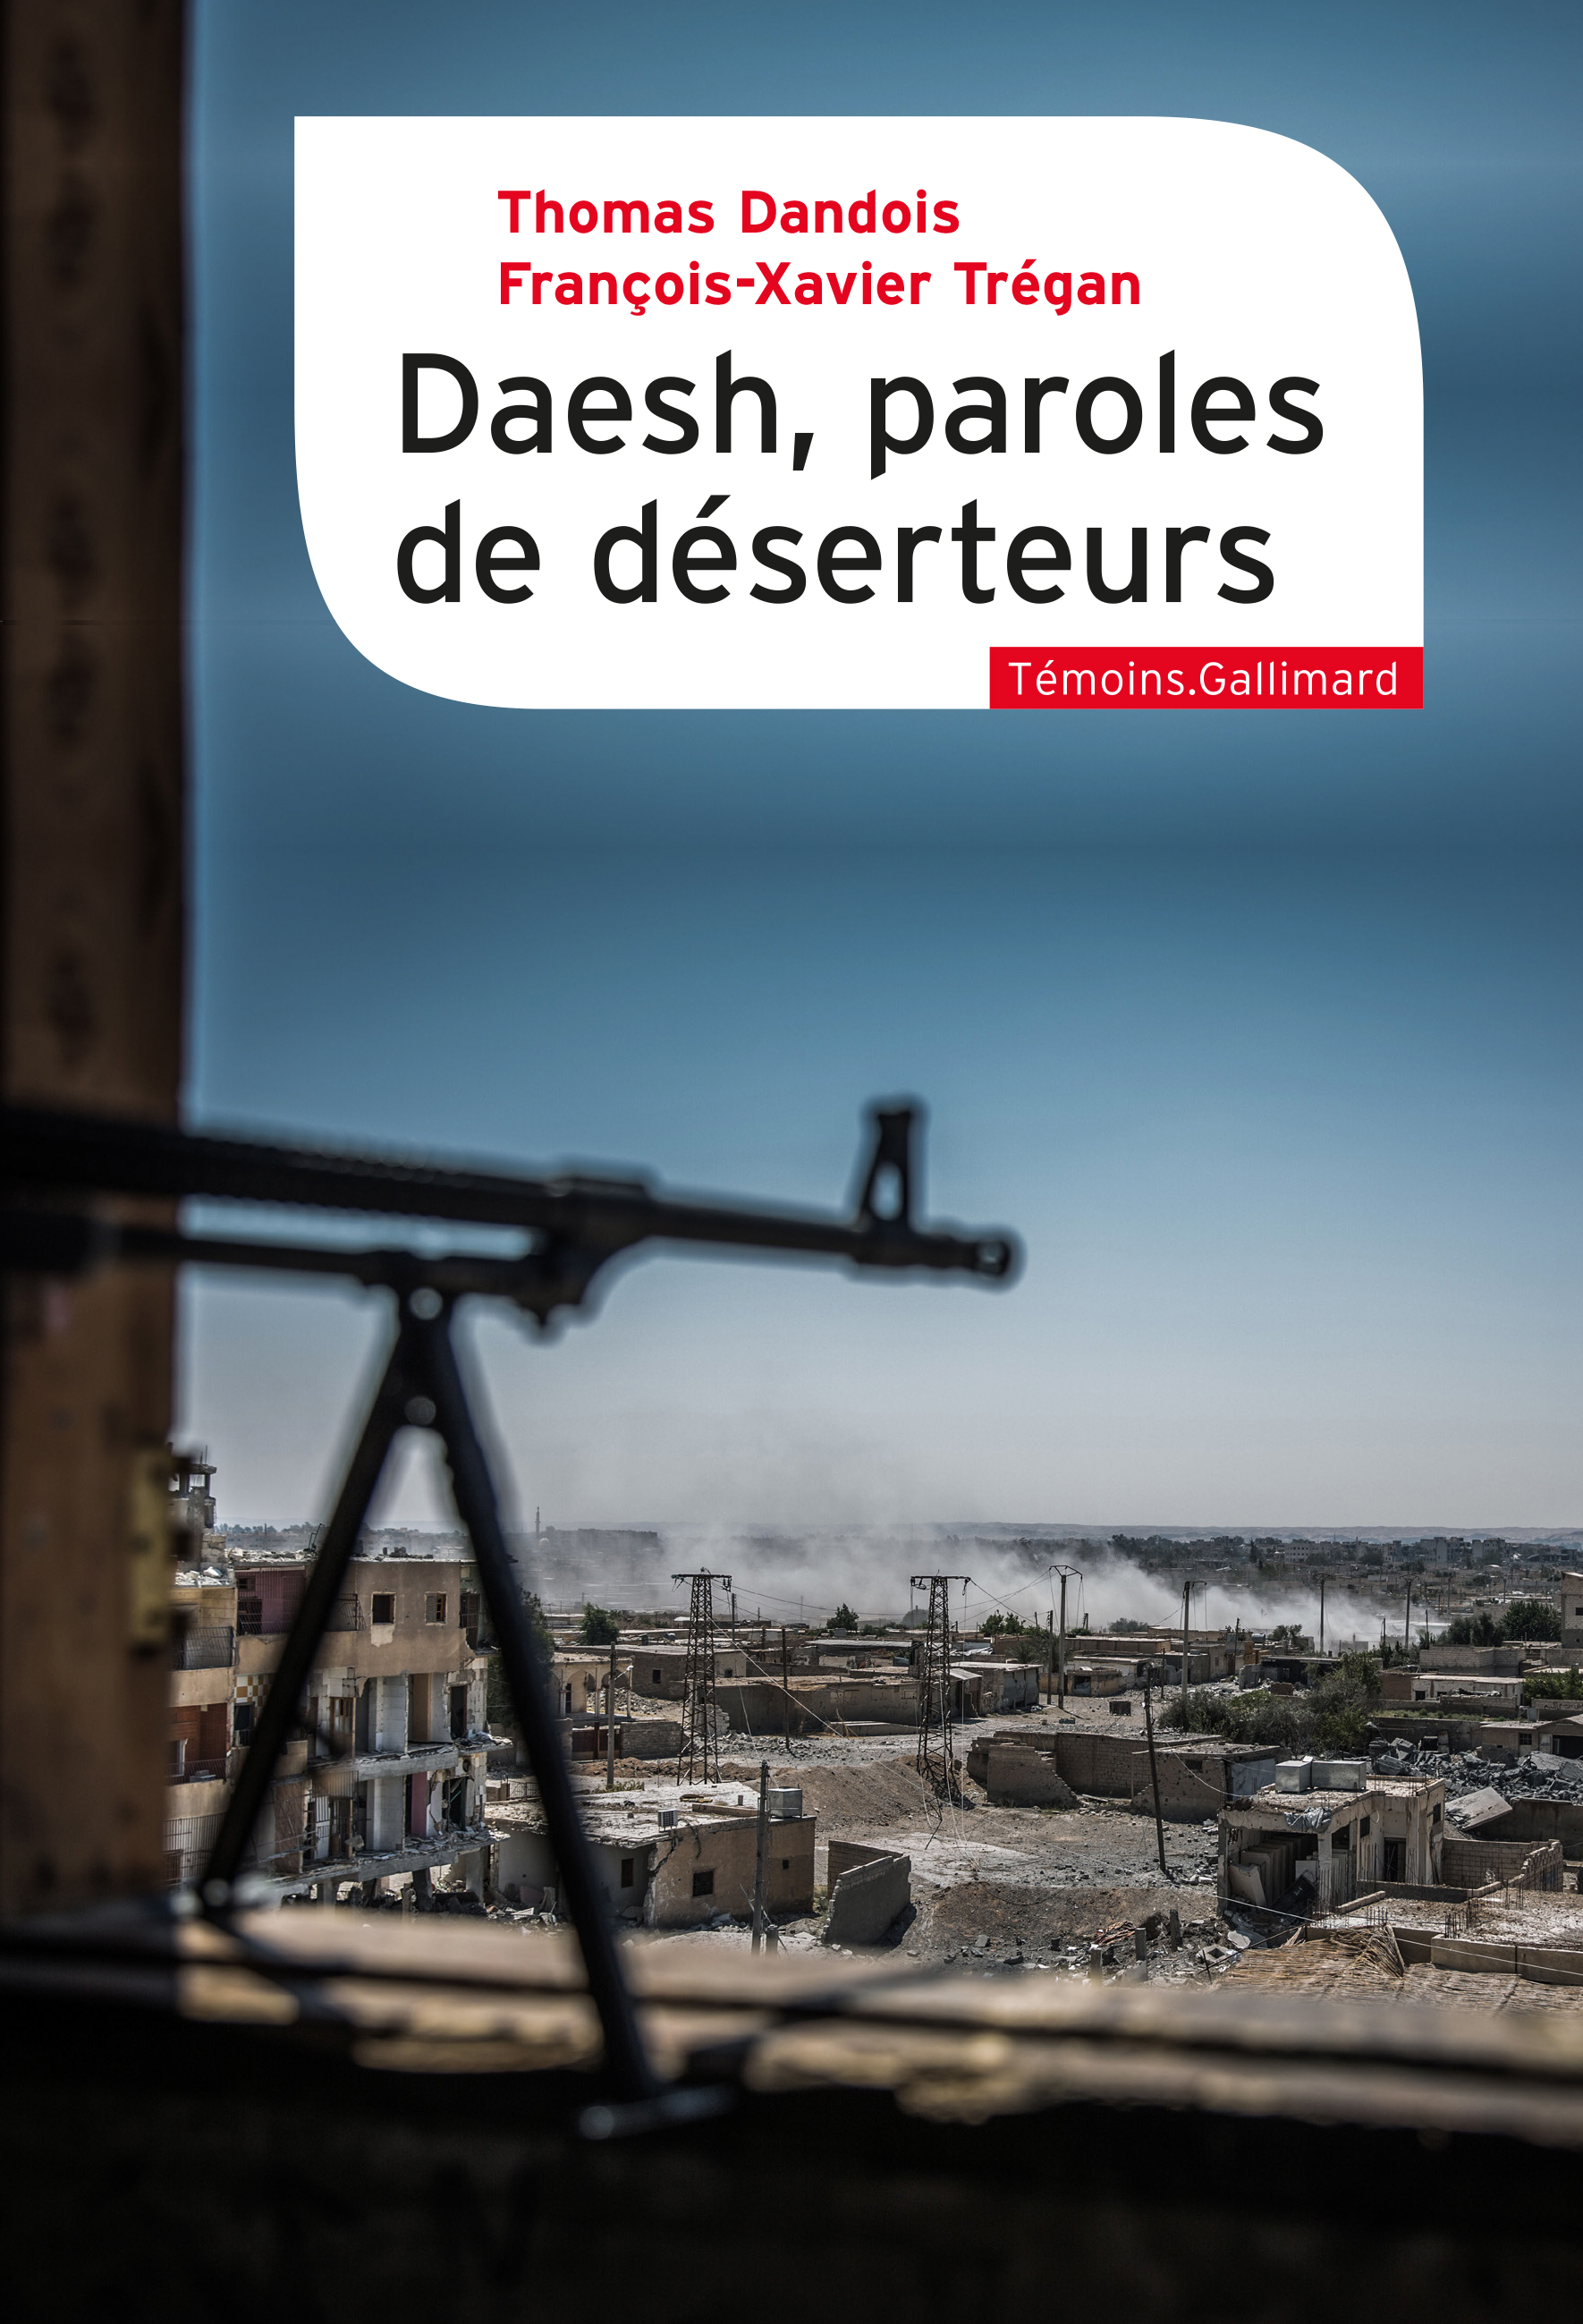 Daesh, paroles de déserteurs